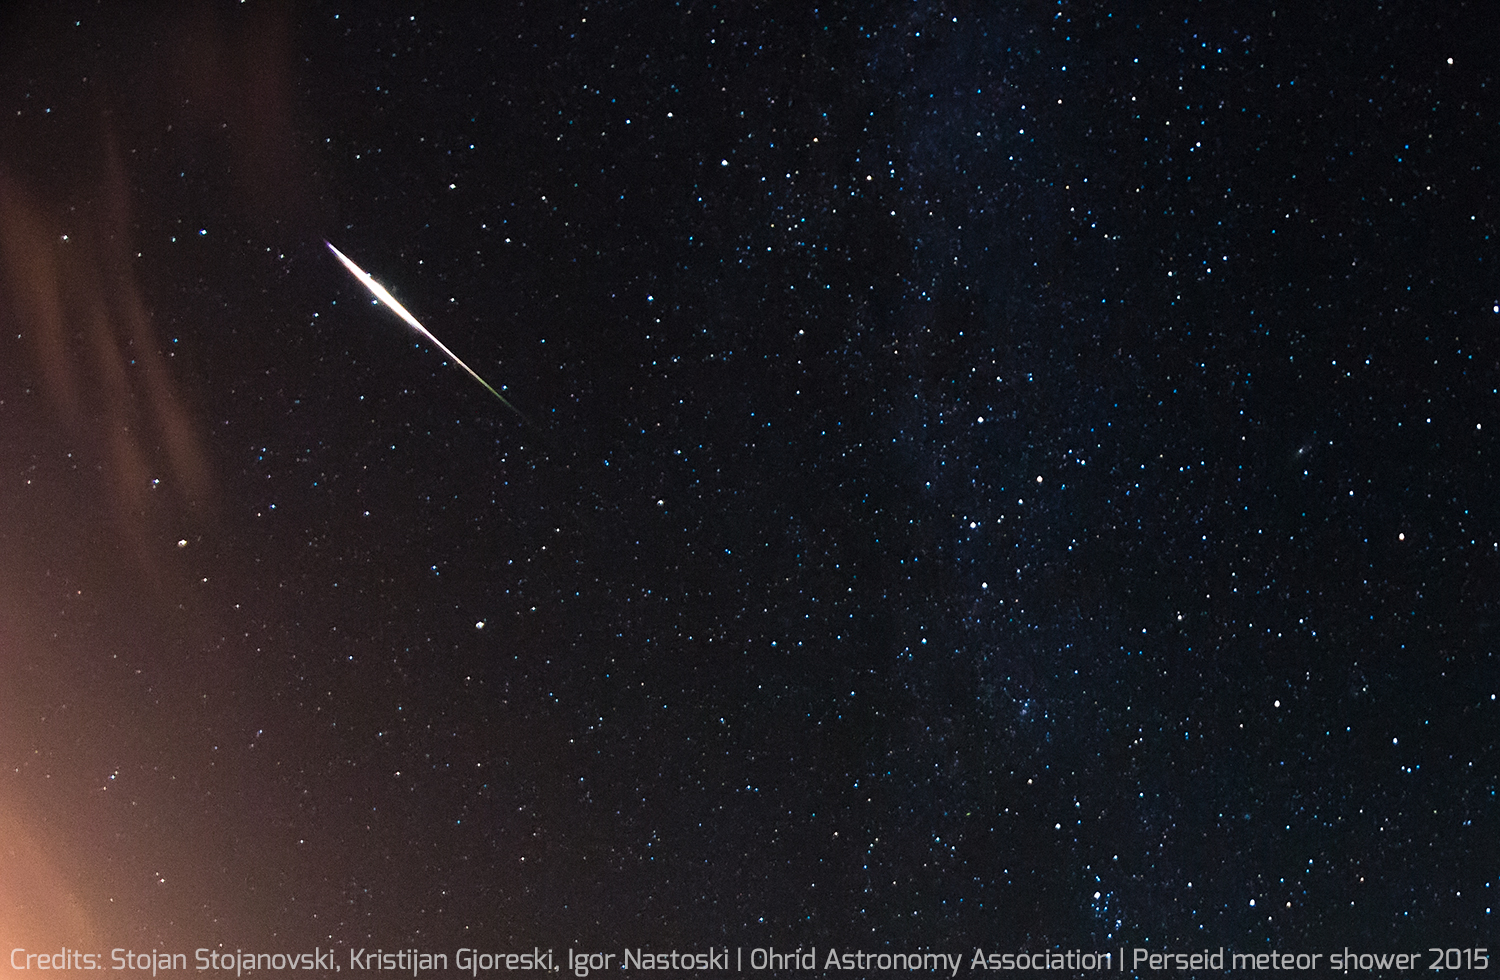 Perseid meteor shower 2021: When, where & how to see it thumbnail